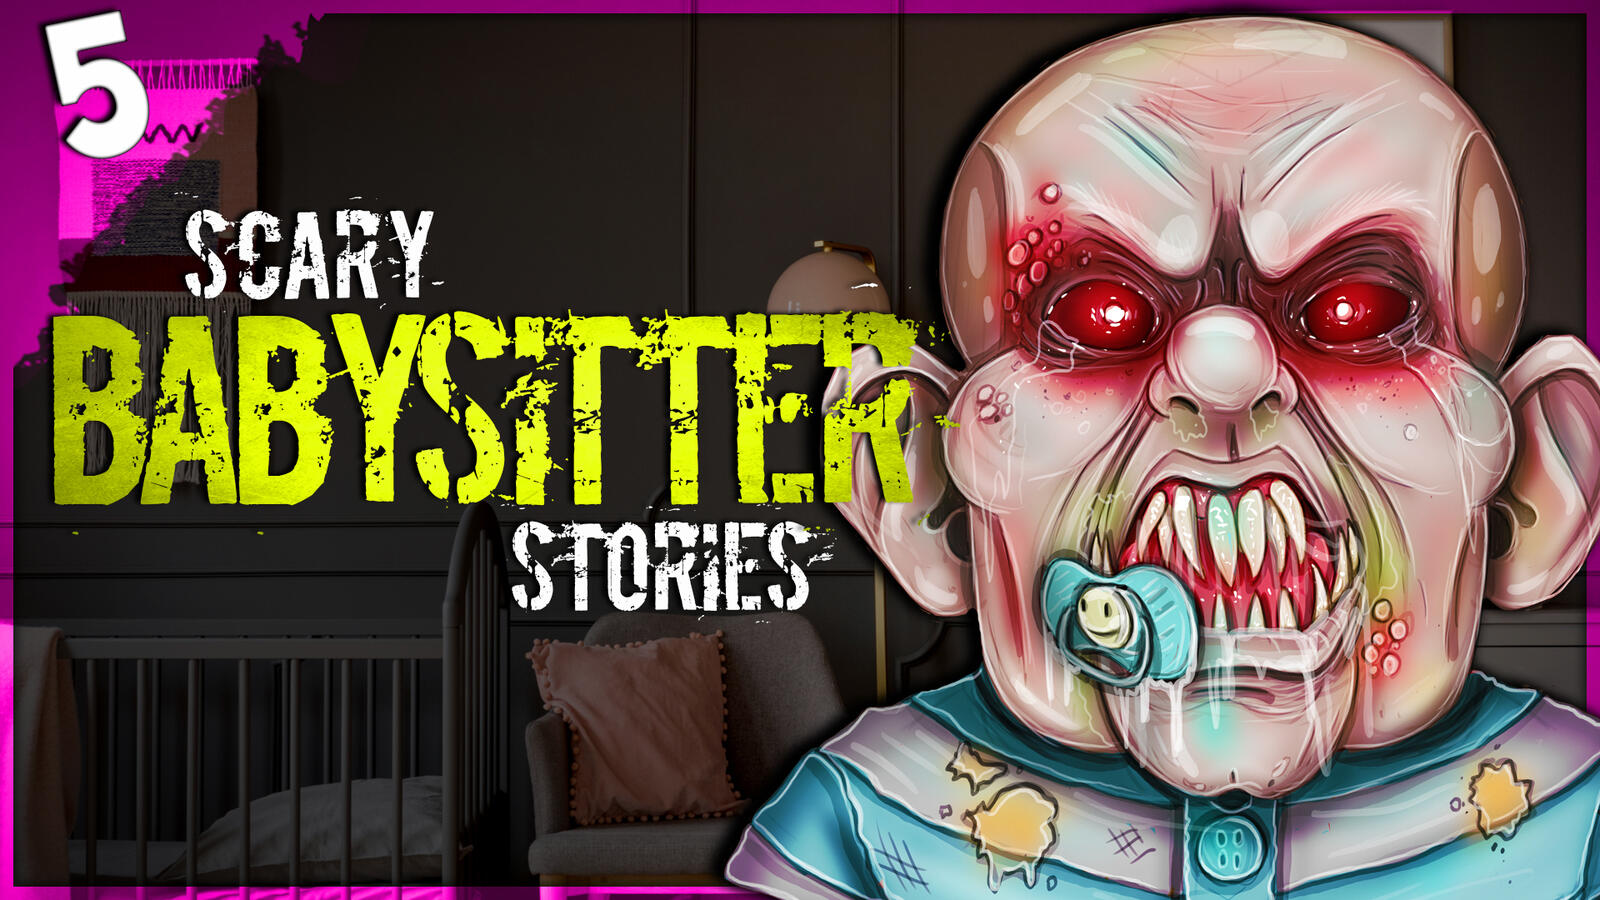 Audioboom / 5 Babysitter HORROR Stories | Darkness Prevails